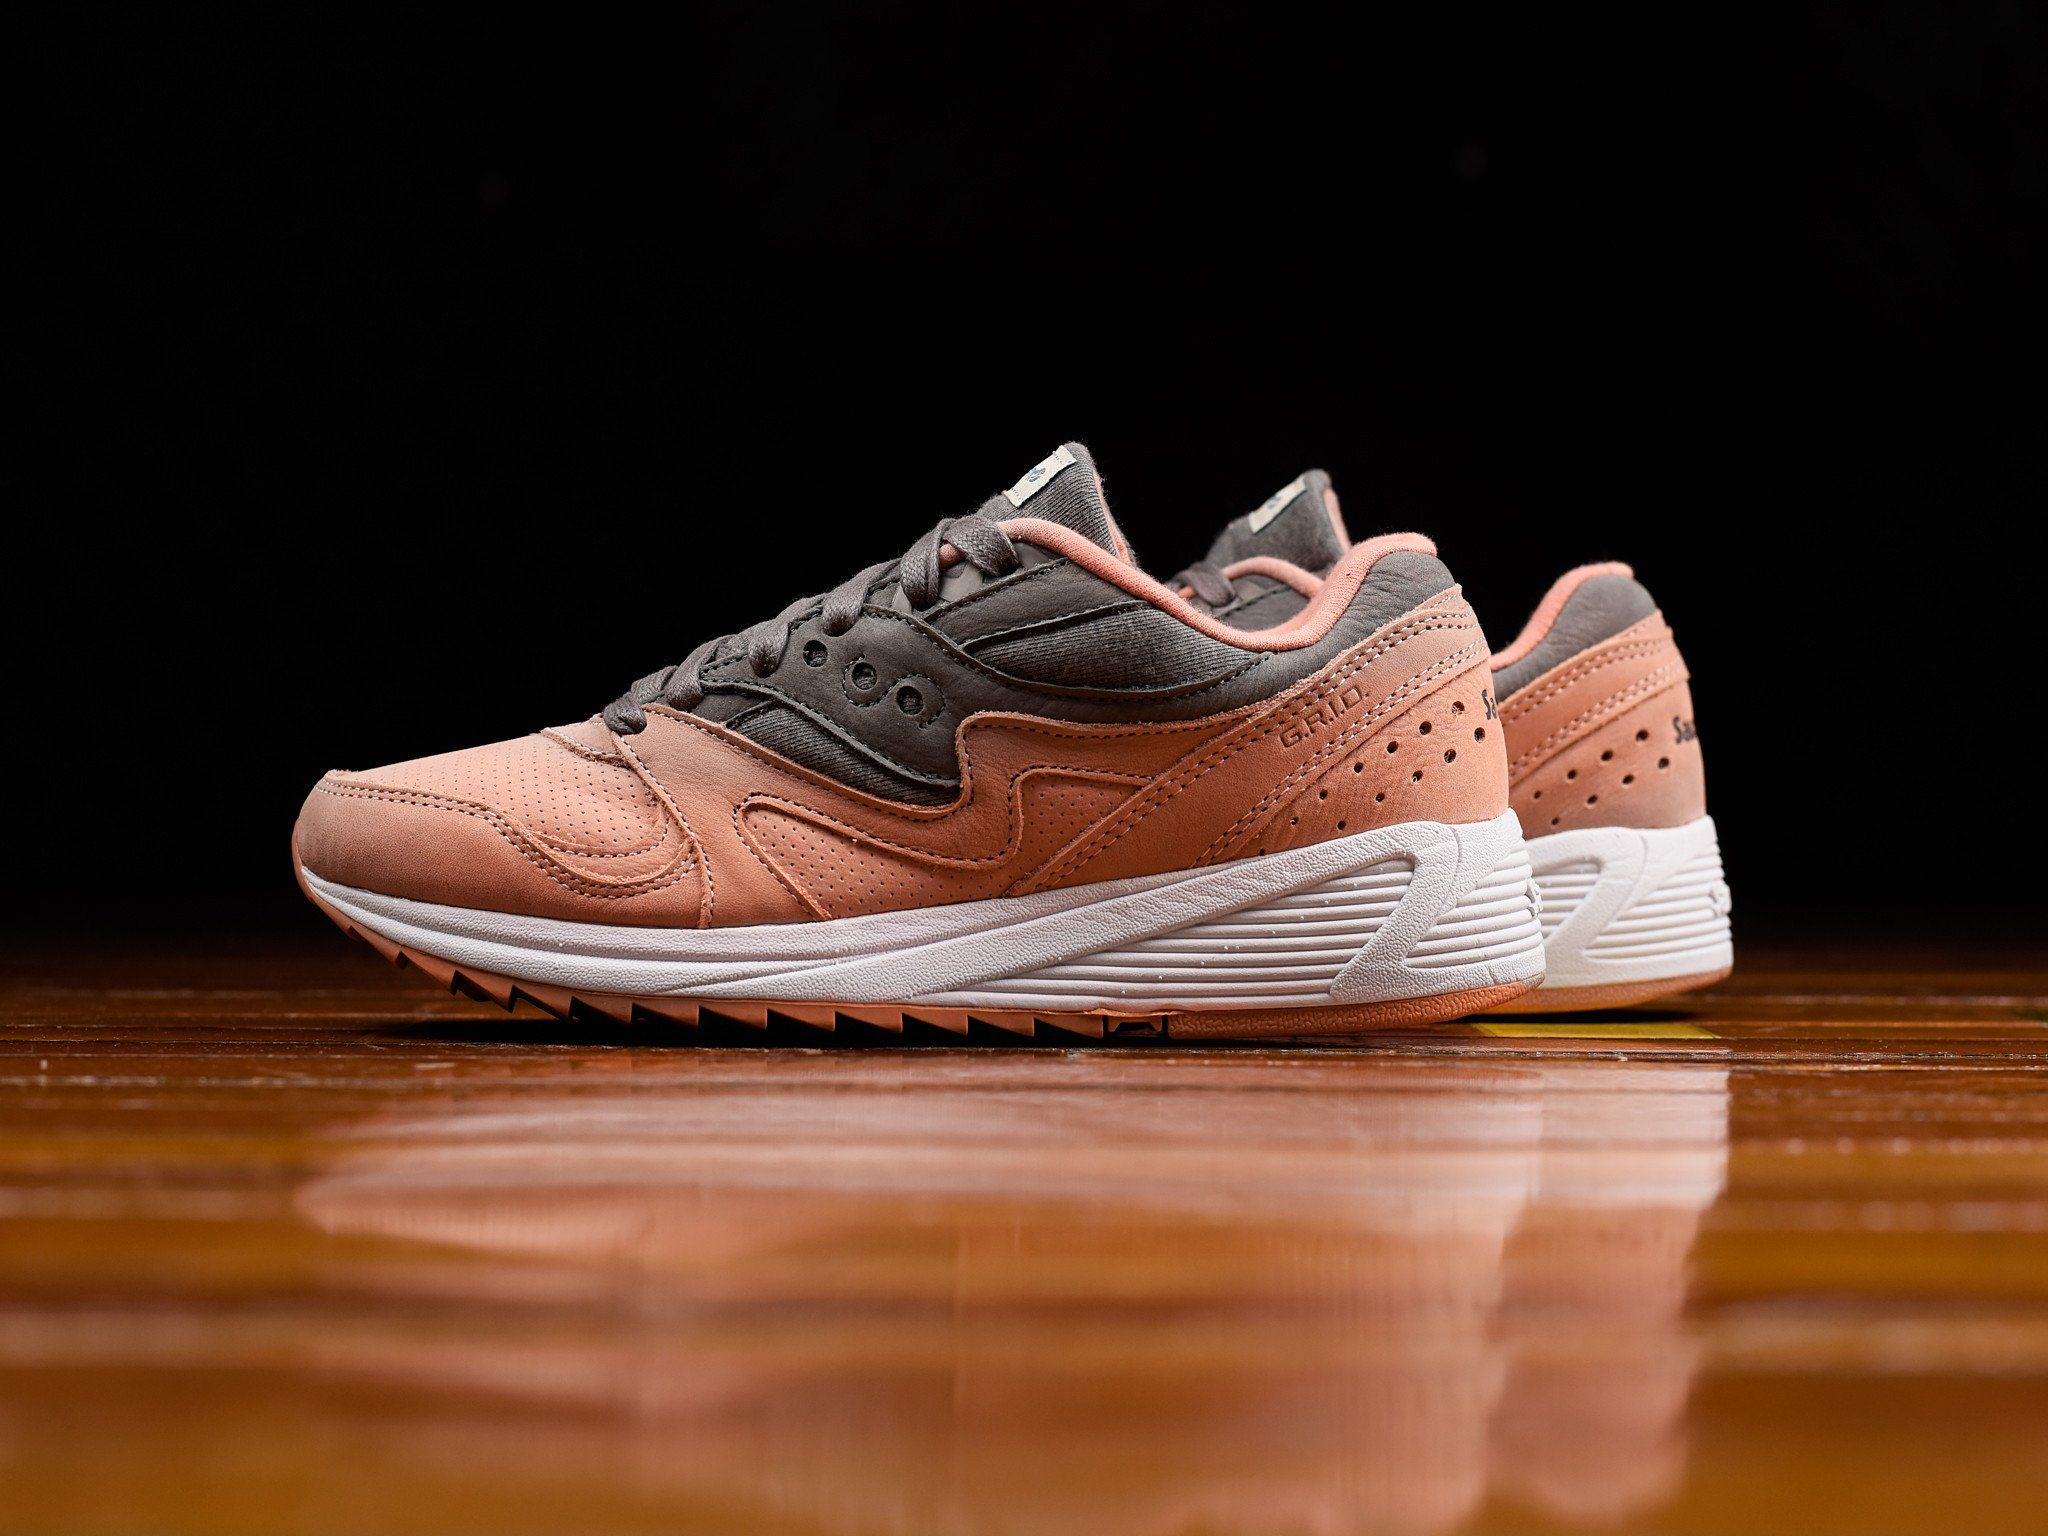 Men's Saucony Grid 8000 'Salmon' [S70303 3] | Saucony